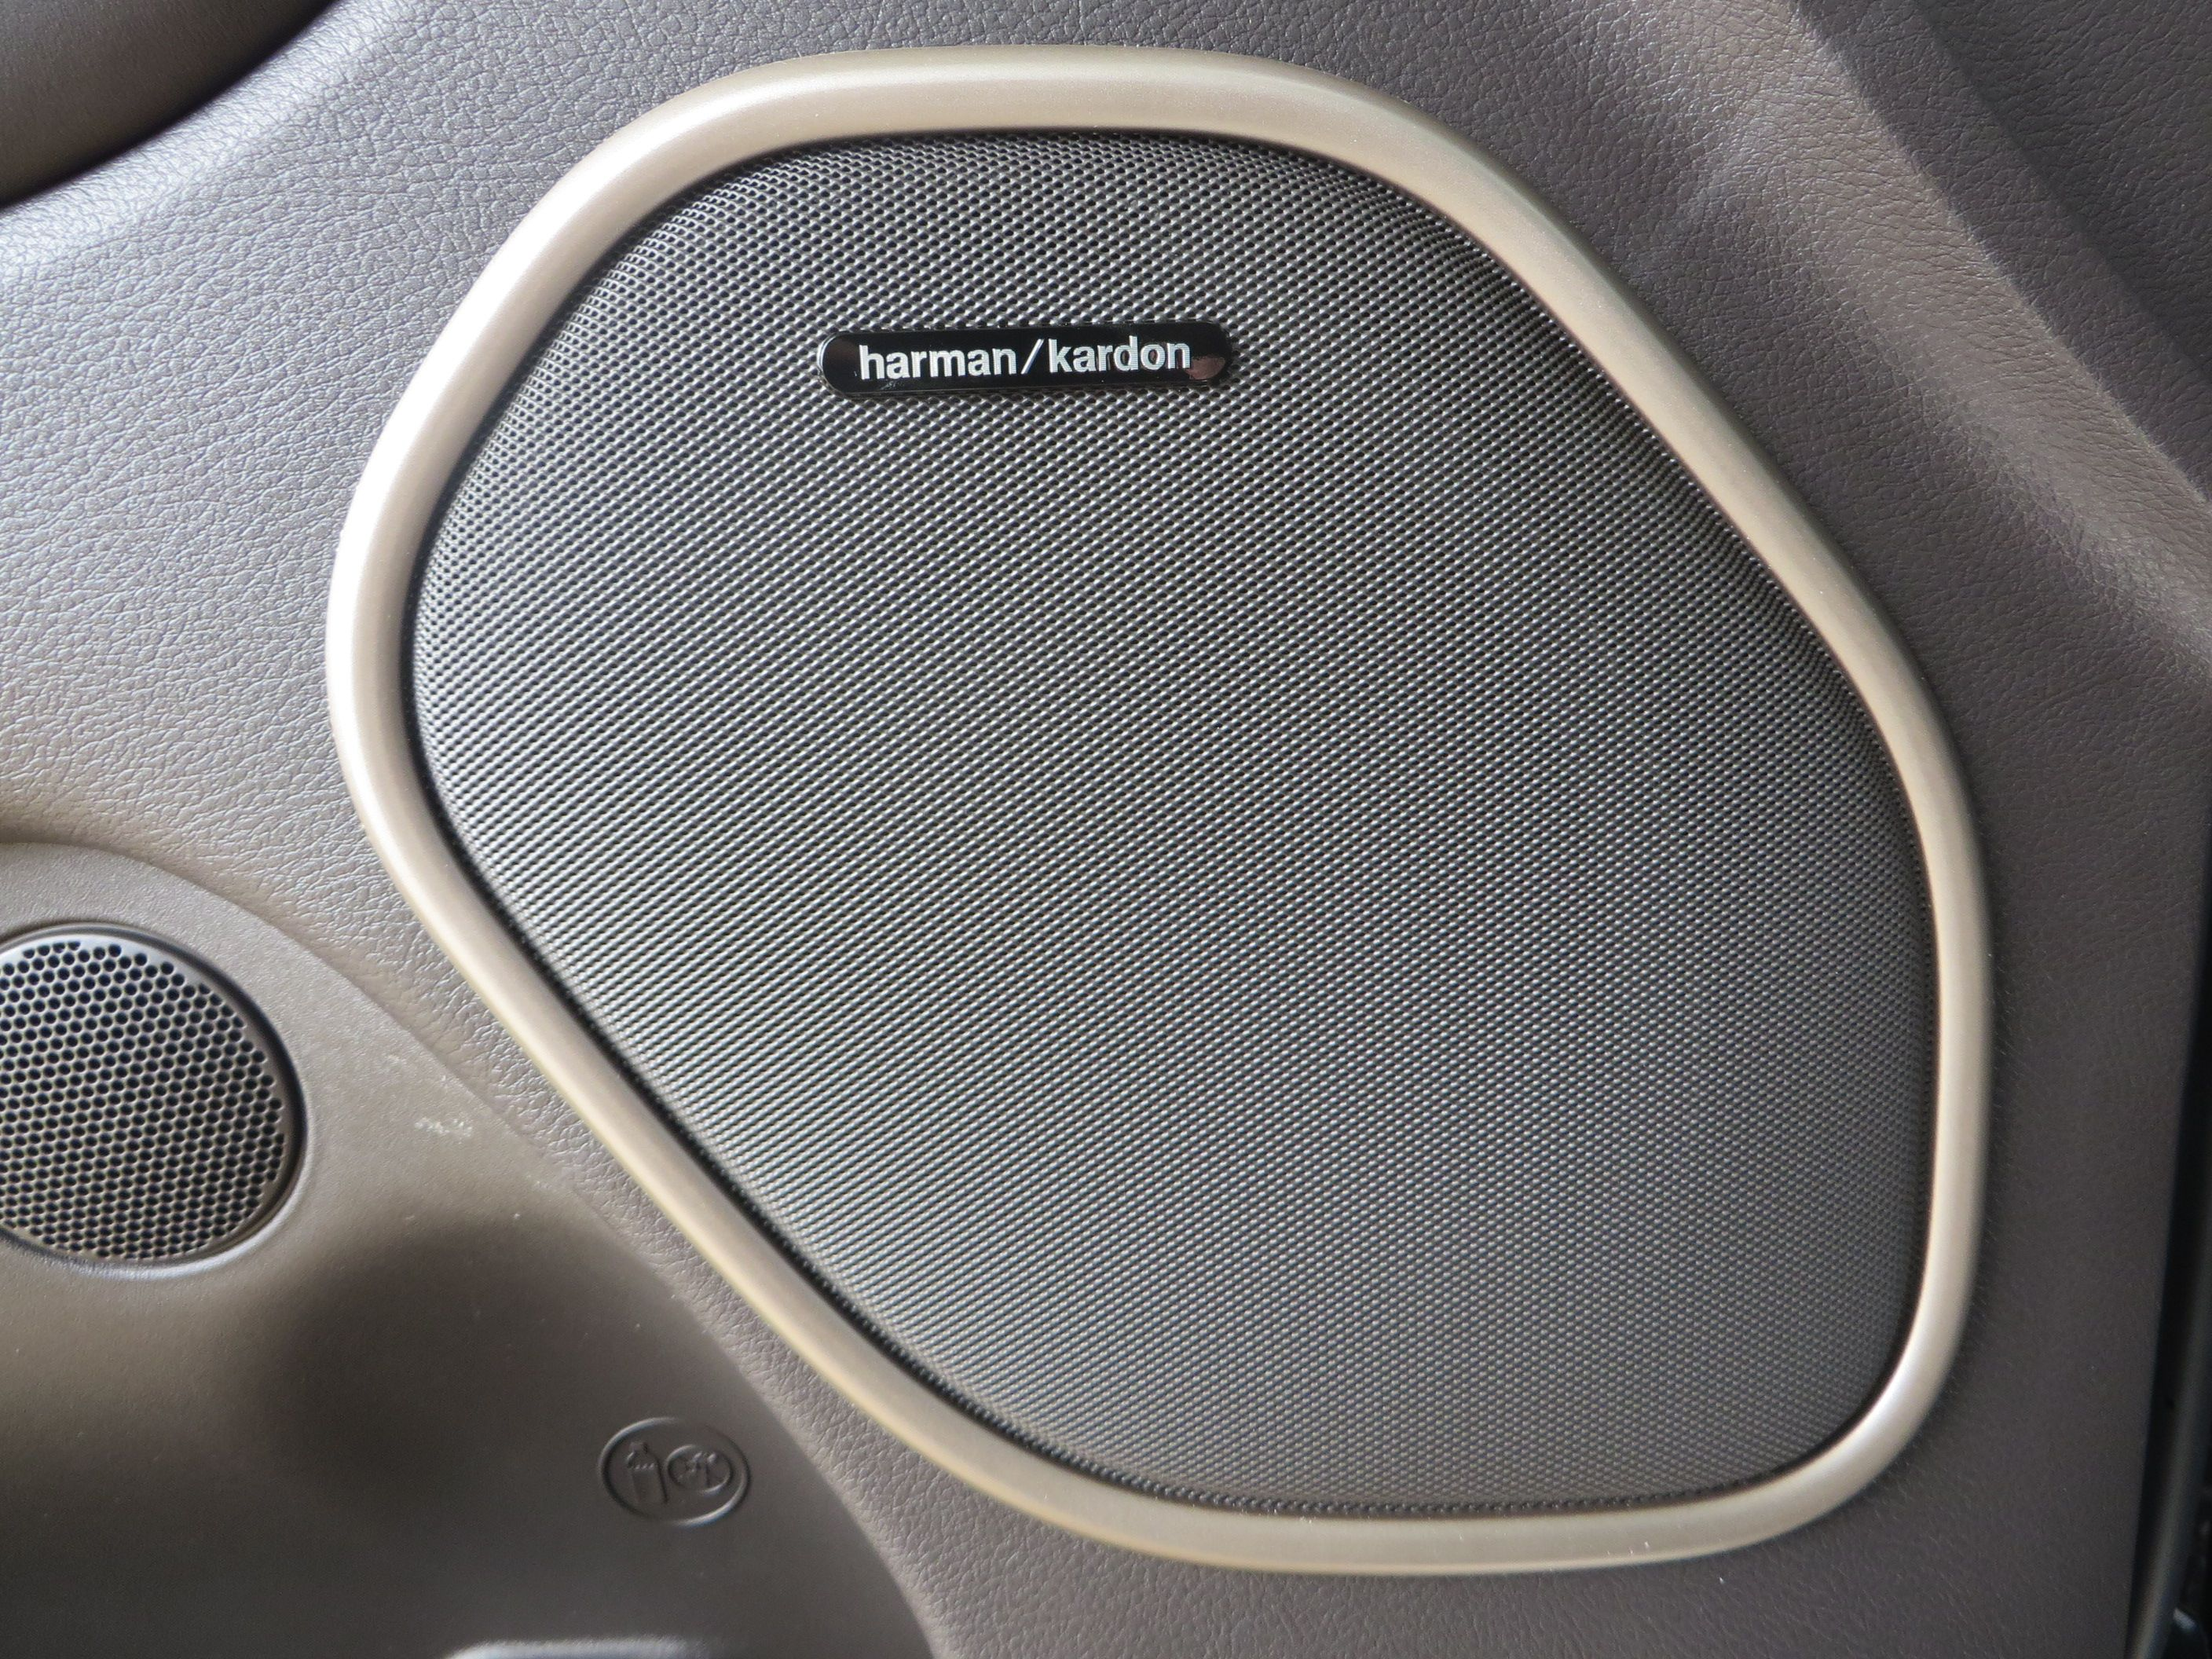 The iconic overland logo is elegantly presented on the front of the leather trimmed driver and front passenger seats jeep grand cherokee pinterest